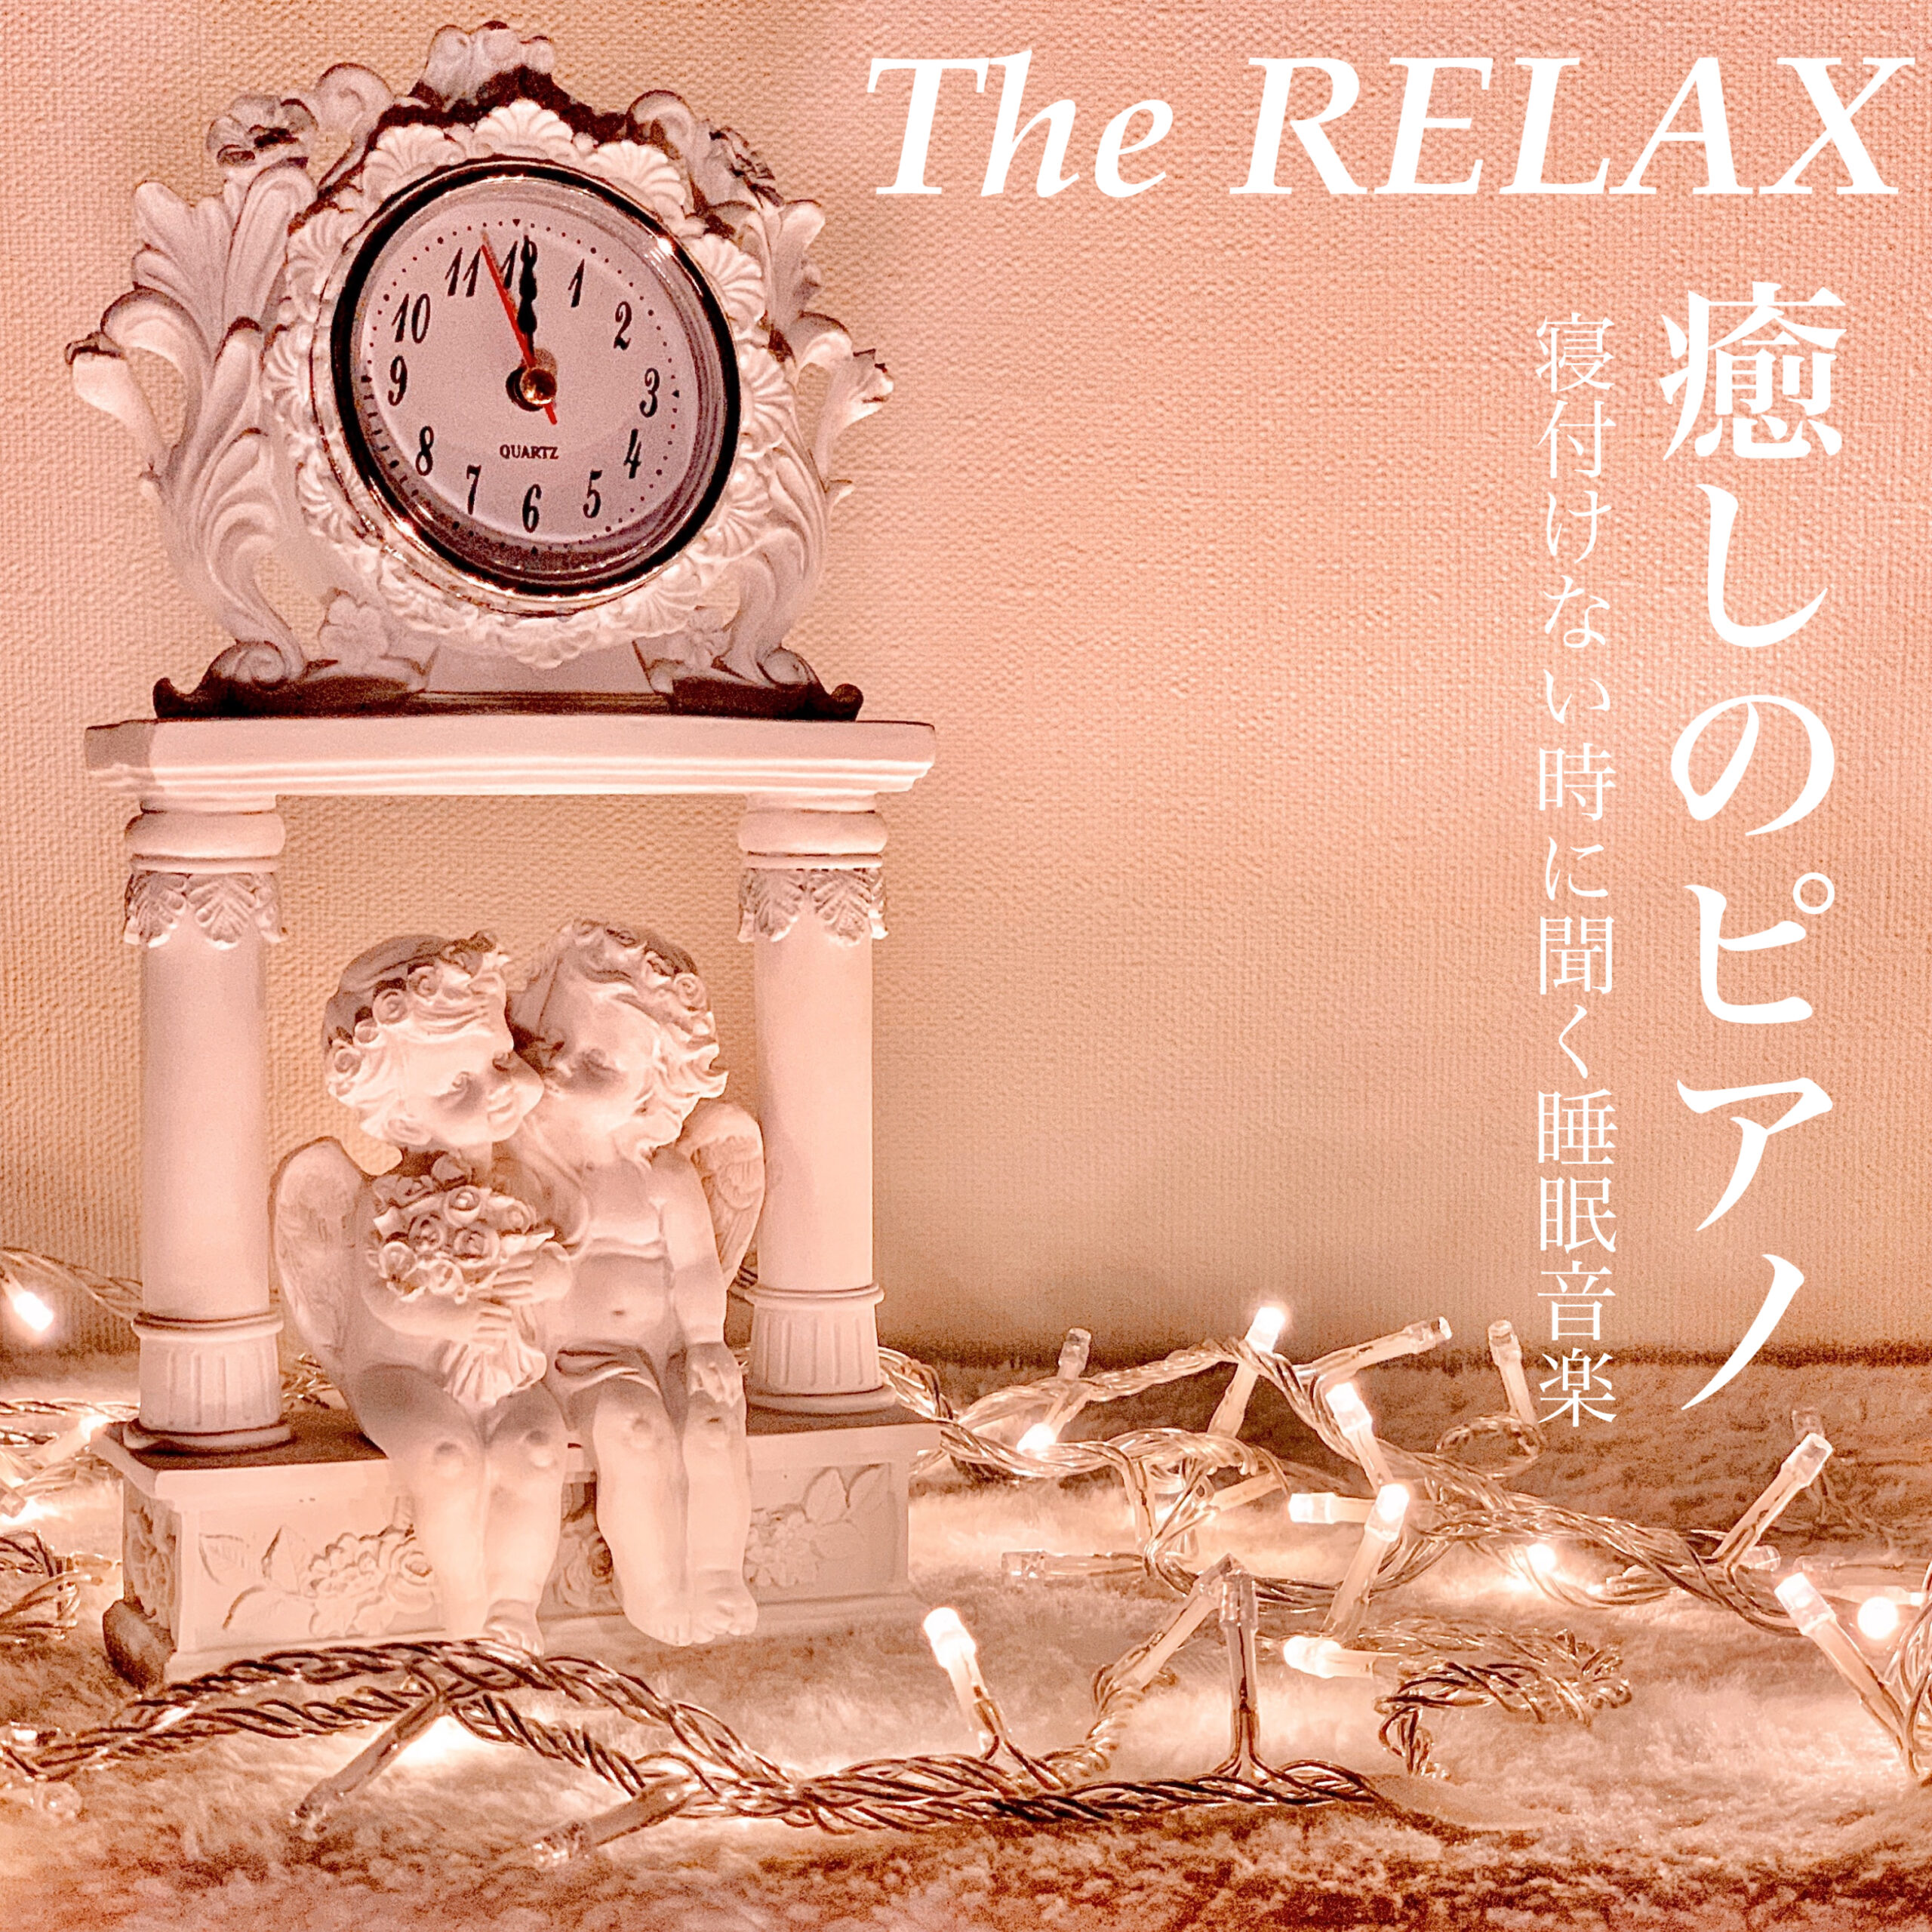 The RELAX  癒しのピアノ  寝付けない時に聞く睡眠音楽